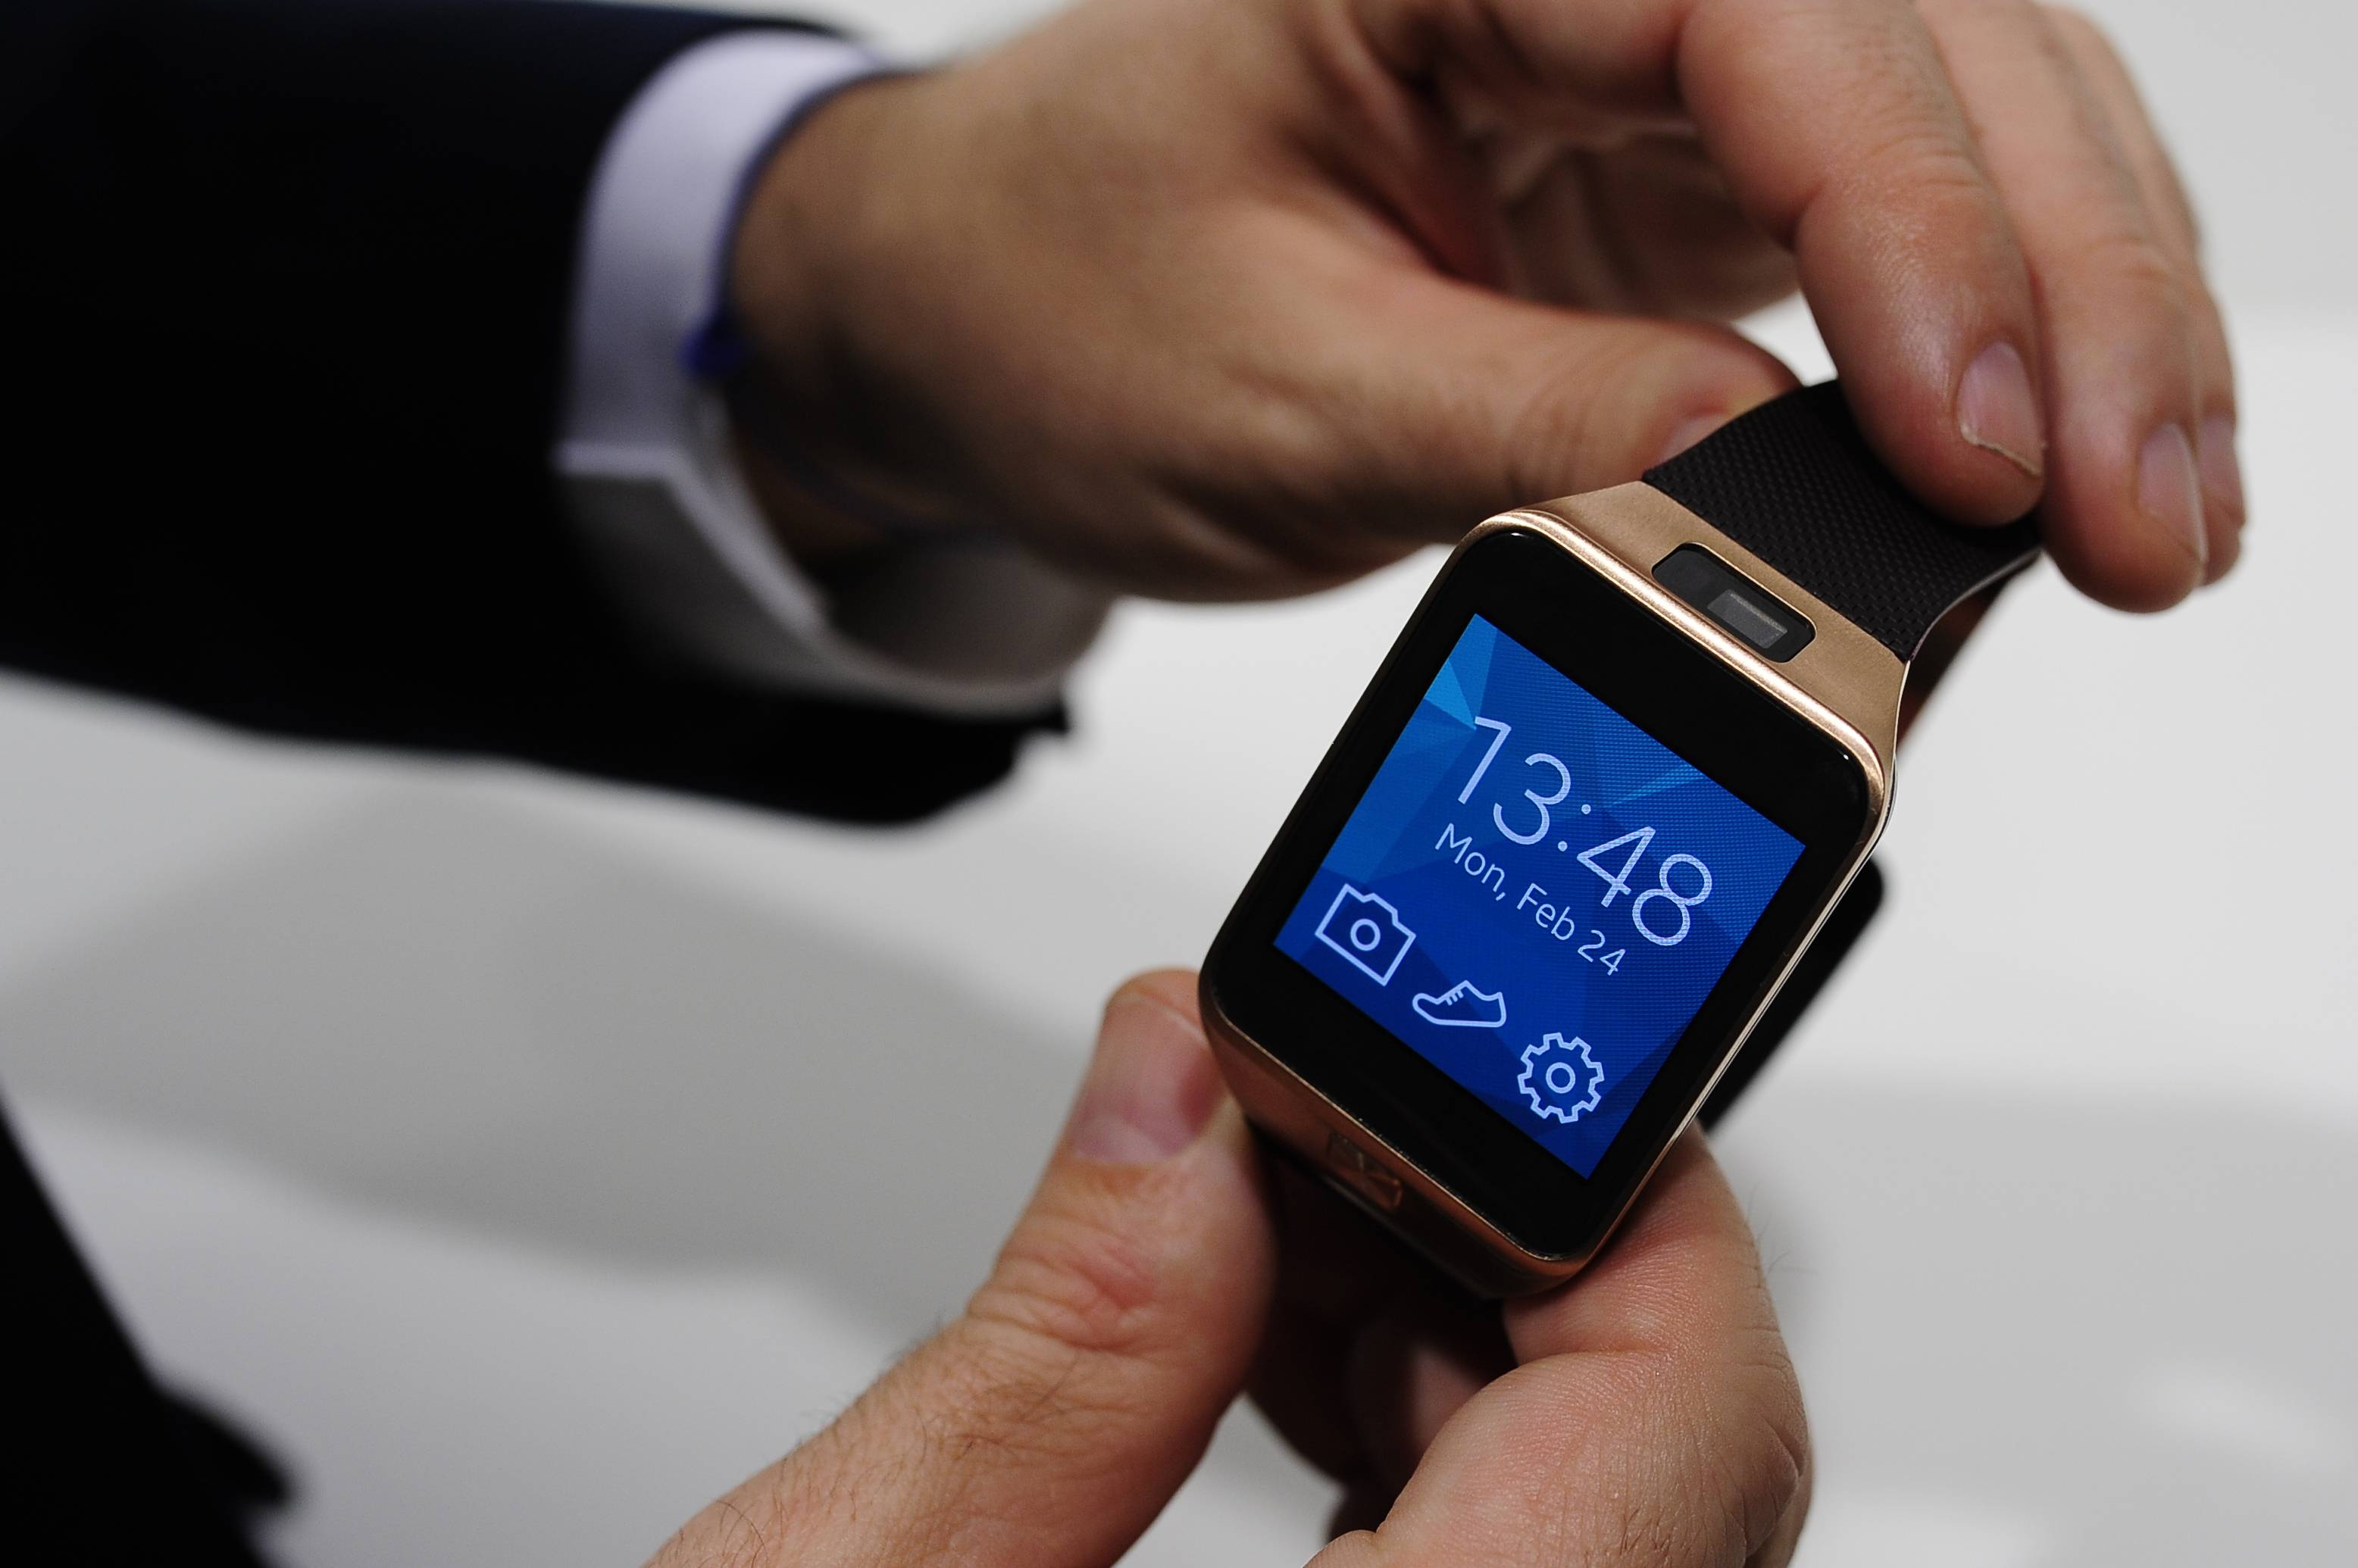 In this Feb. 24, 2014 file photo, the Samsung Gear 2 smartwatch is displayed at the Mobile World Congress in Spain. The Gear 2 line doesn't use Android Wear, but a fledging system called Tizen. Samsung says that helps extend battery life to two or three days, instead of the single day on the original, Android-based Galaxy Gear. Unlike the Android Wear watches, the Gear 2 and the Gear 2 Neo both require a Samsung phone.